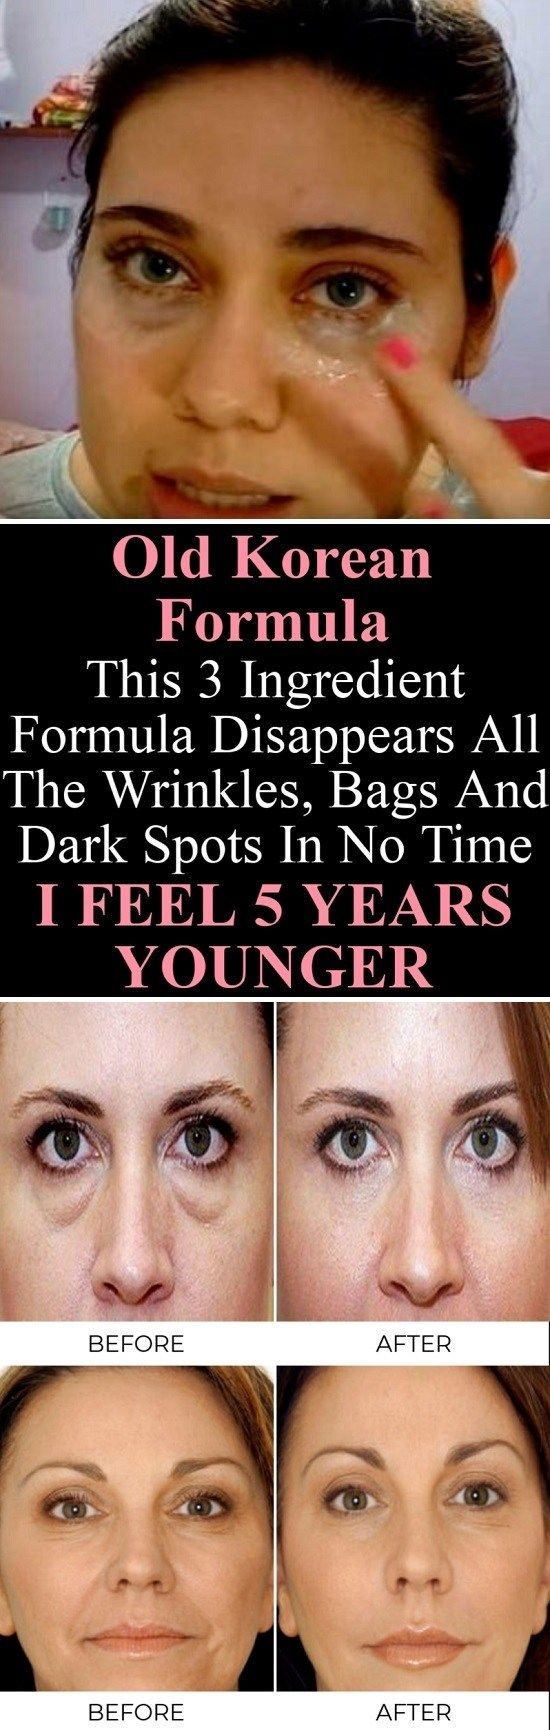 Old Korean Formula This 3 Ingredient Formula Disappears All The Wrinkles, Bags And Dark Spots In No Time I FEEL 5 YEARS YOUNGER